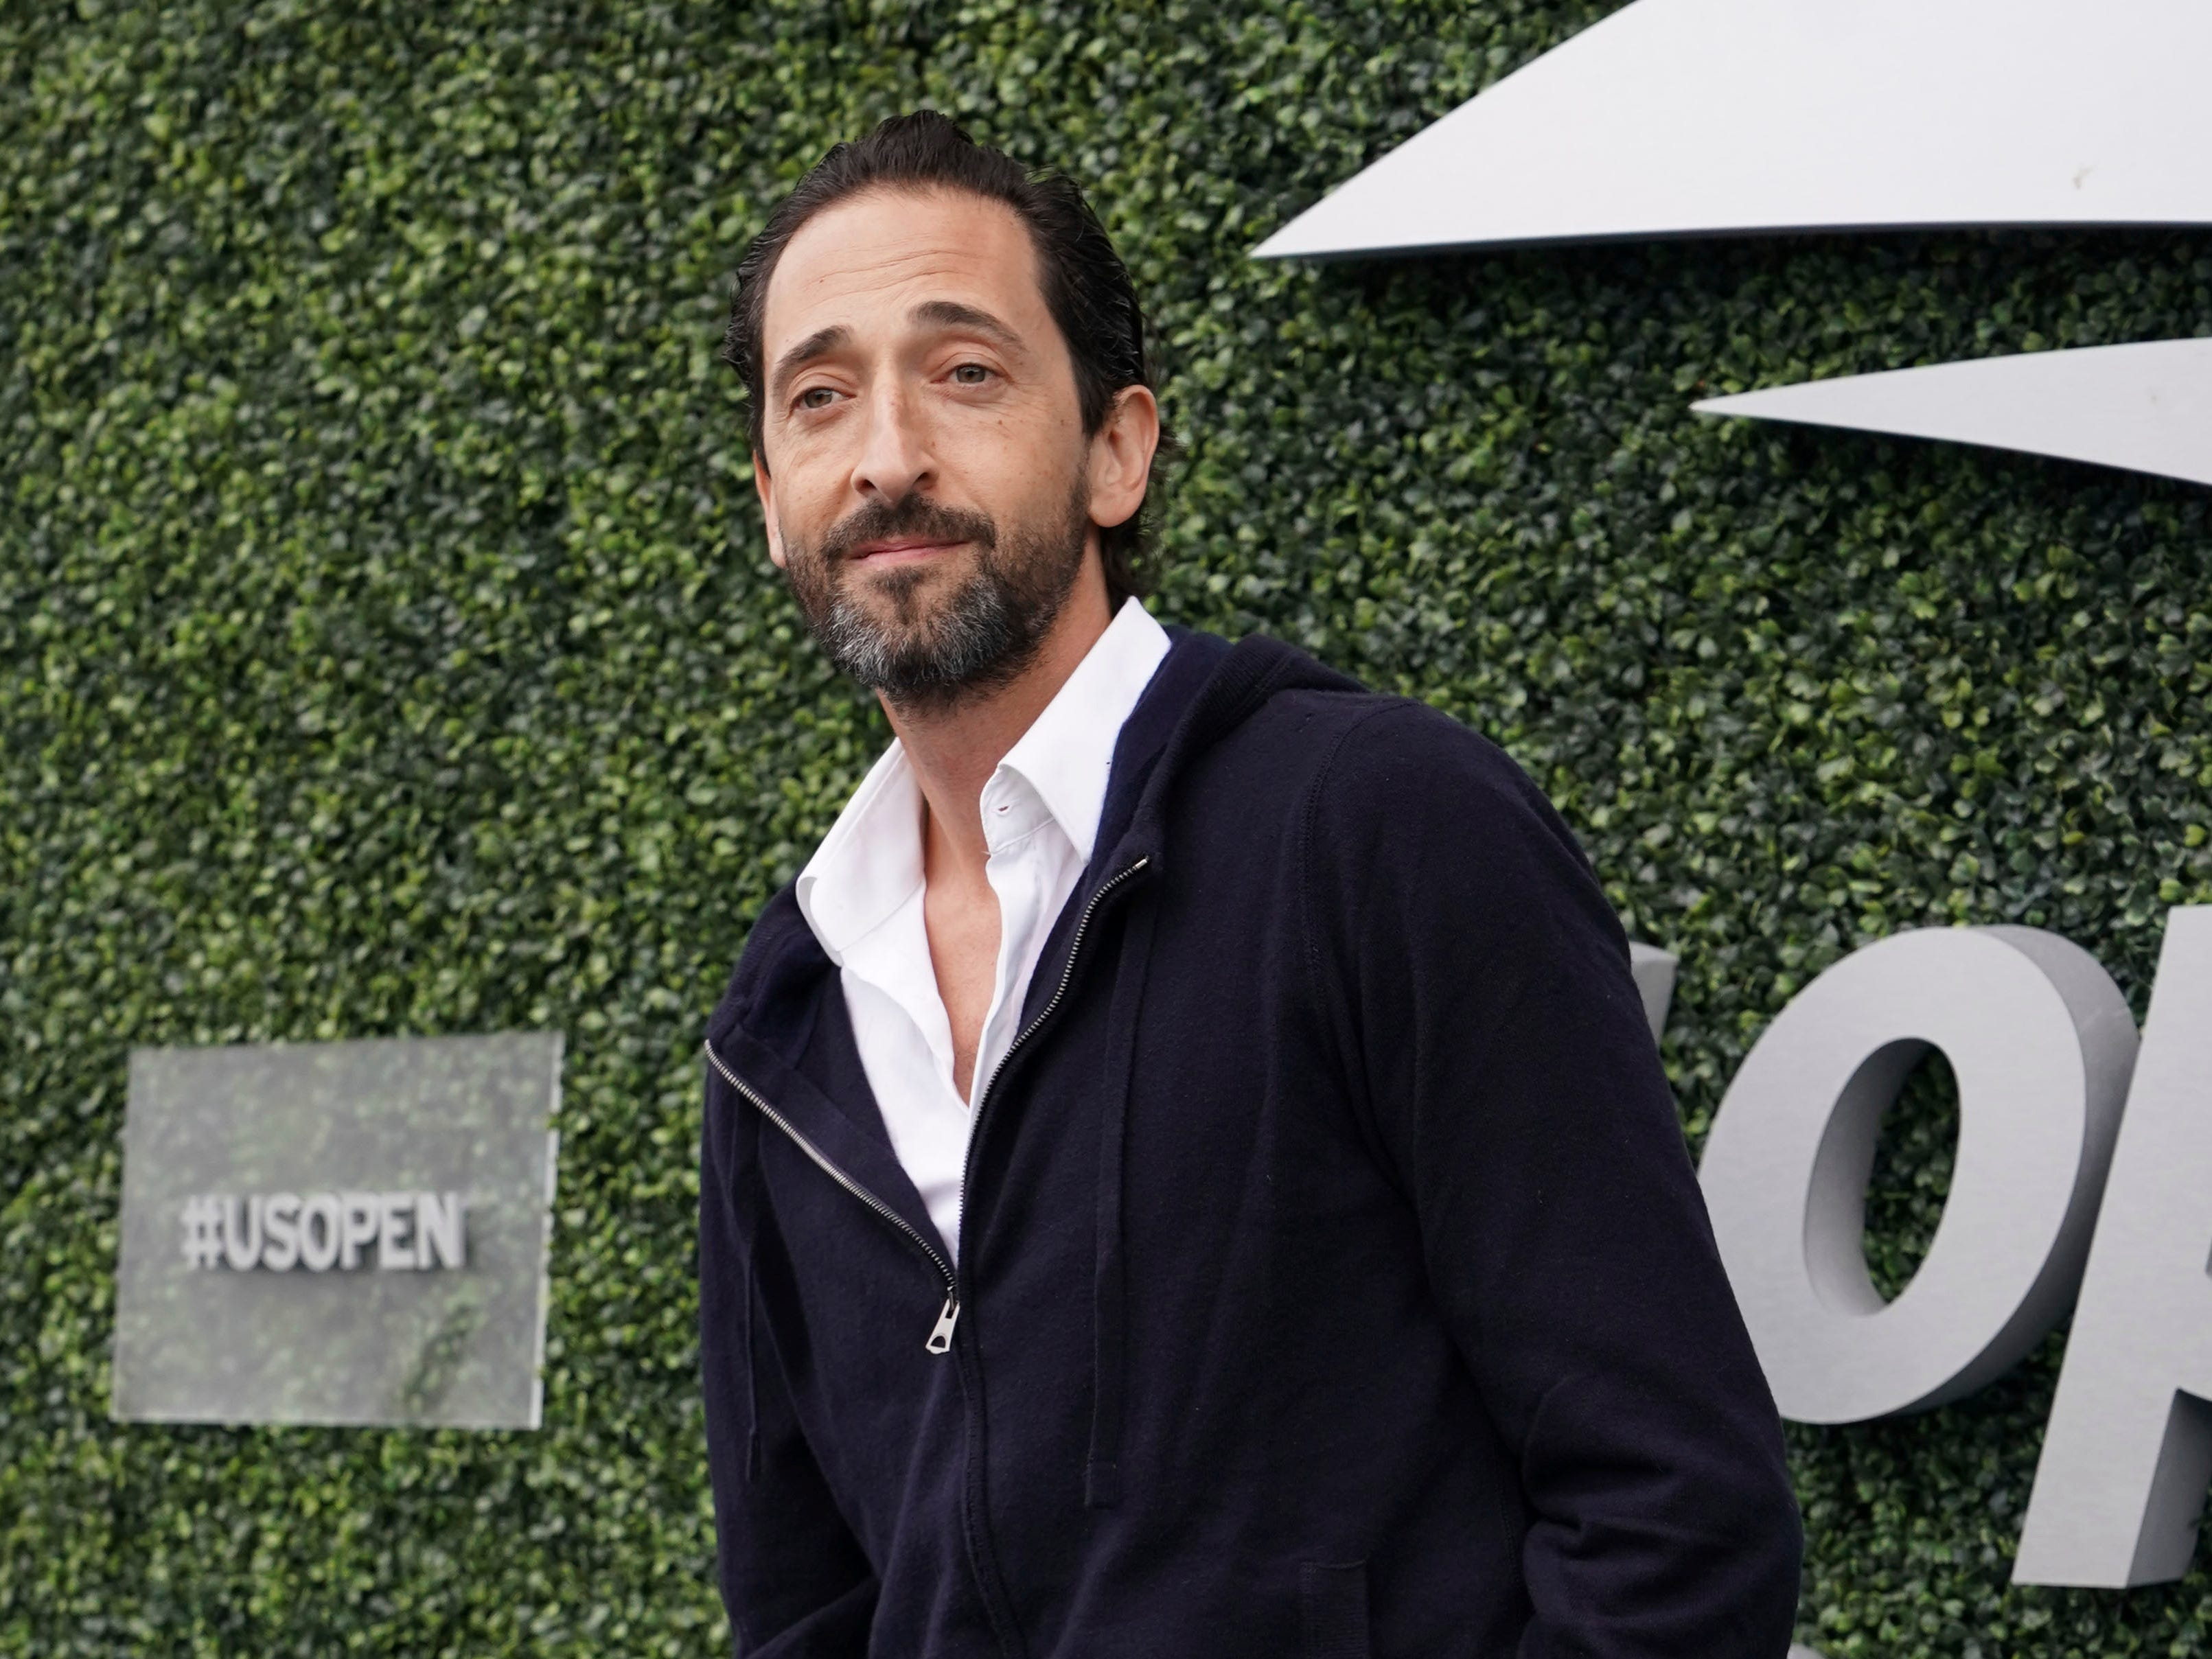 Actor Adrien Brody attends the women's final between Serena Williams and Naomi Osaka.